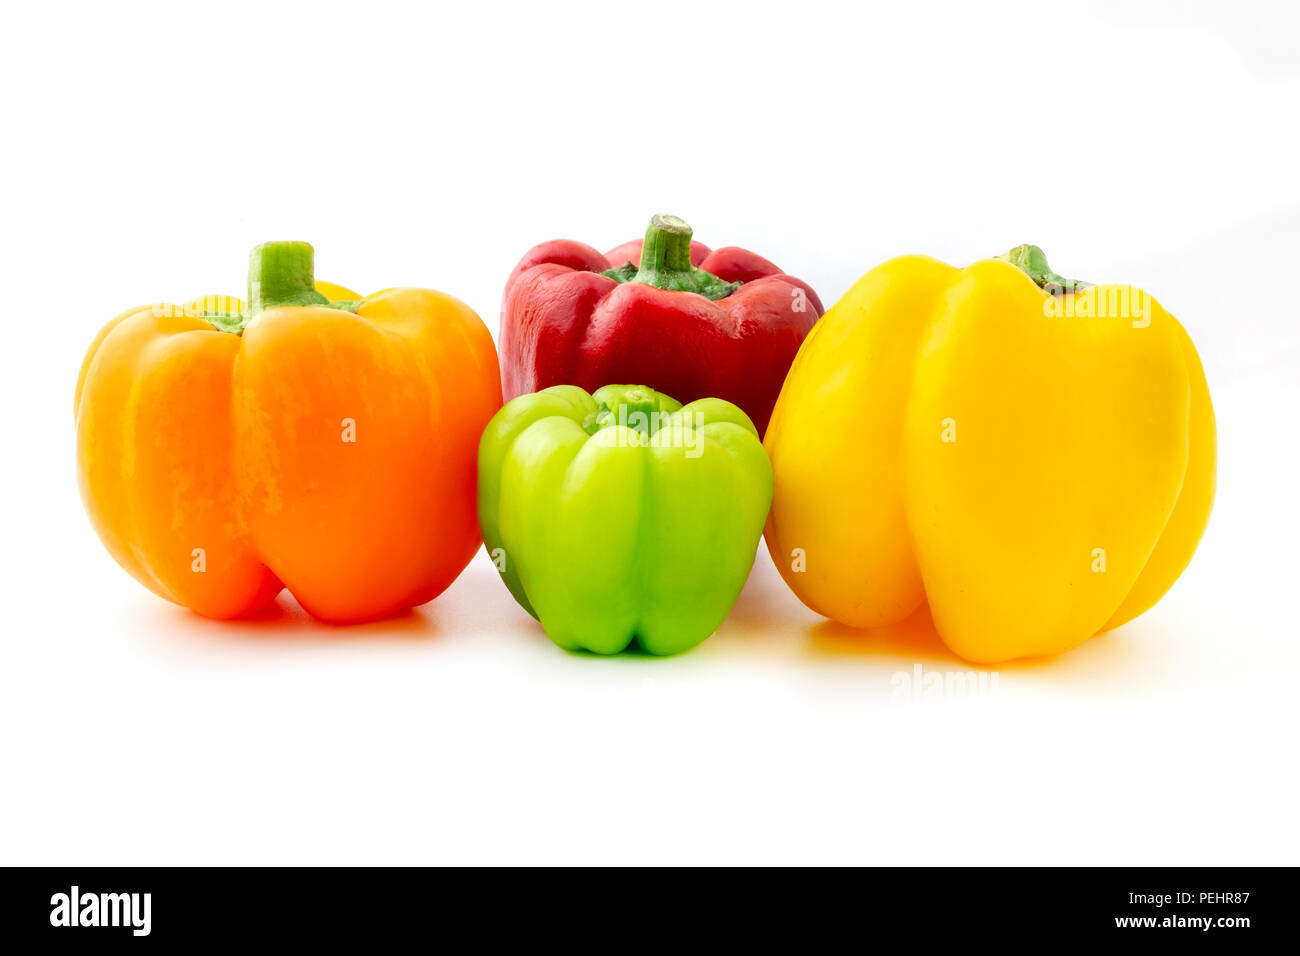 Mixed bell peppers (Capsicum annuum) on a white background - Stock Image